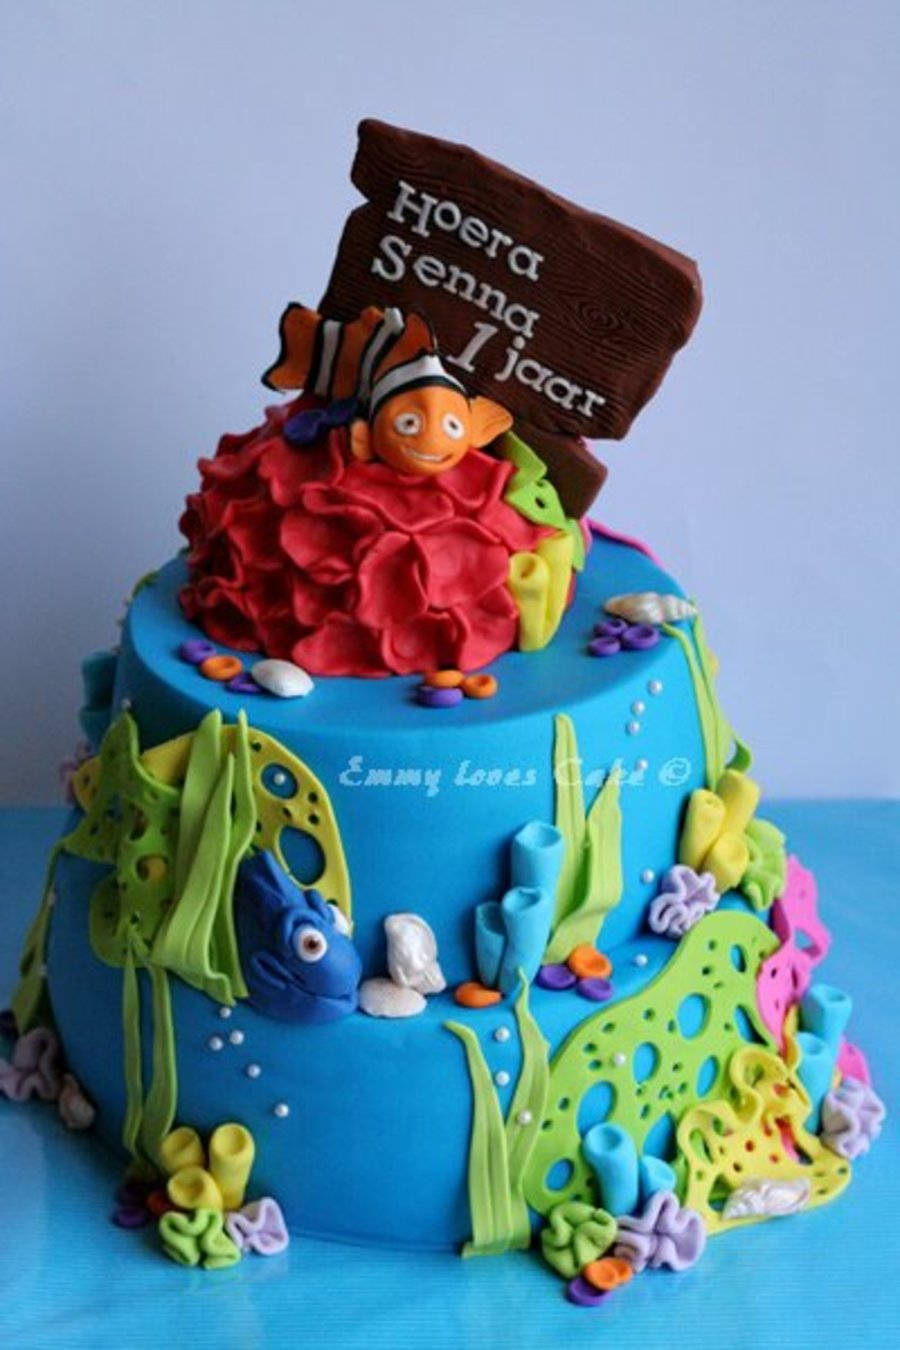 Finding Nemo Cake on Cake Central